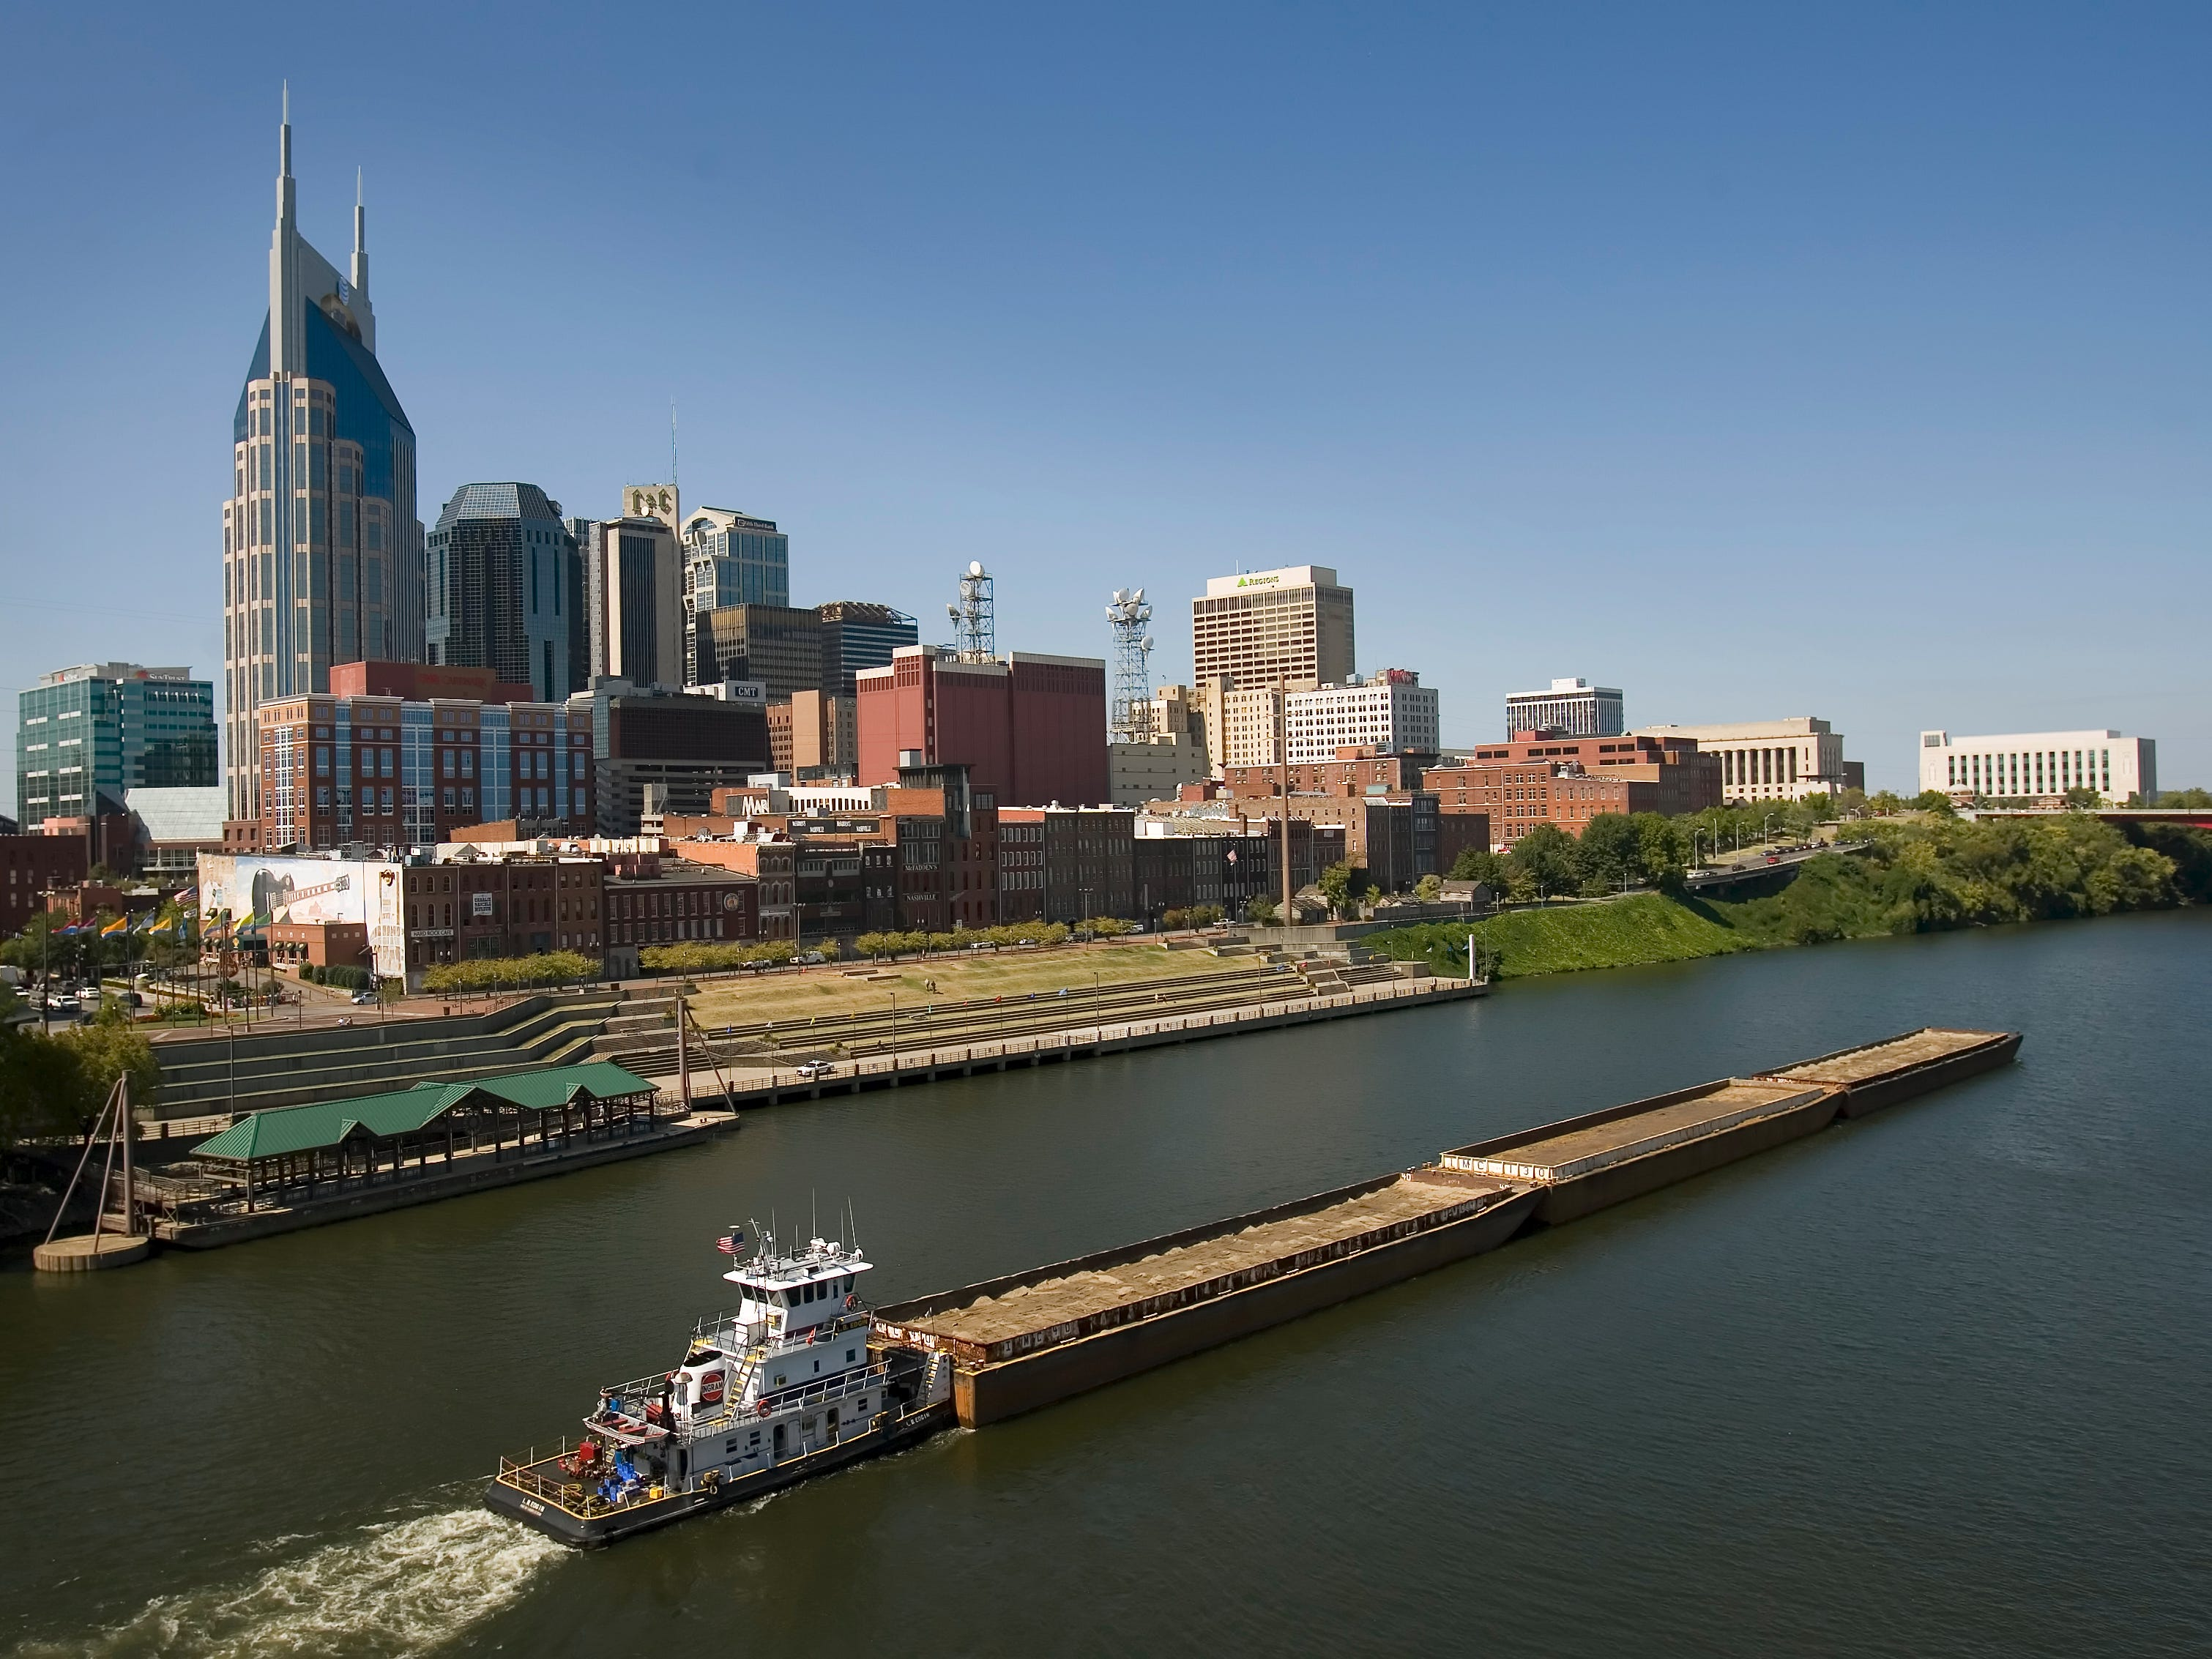 A tugboat pushes barges on the Cumberland River passing by the downtown Nashville skyline Oct. 1, 2008.